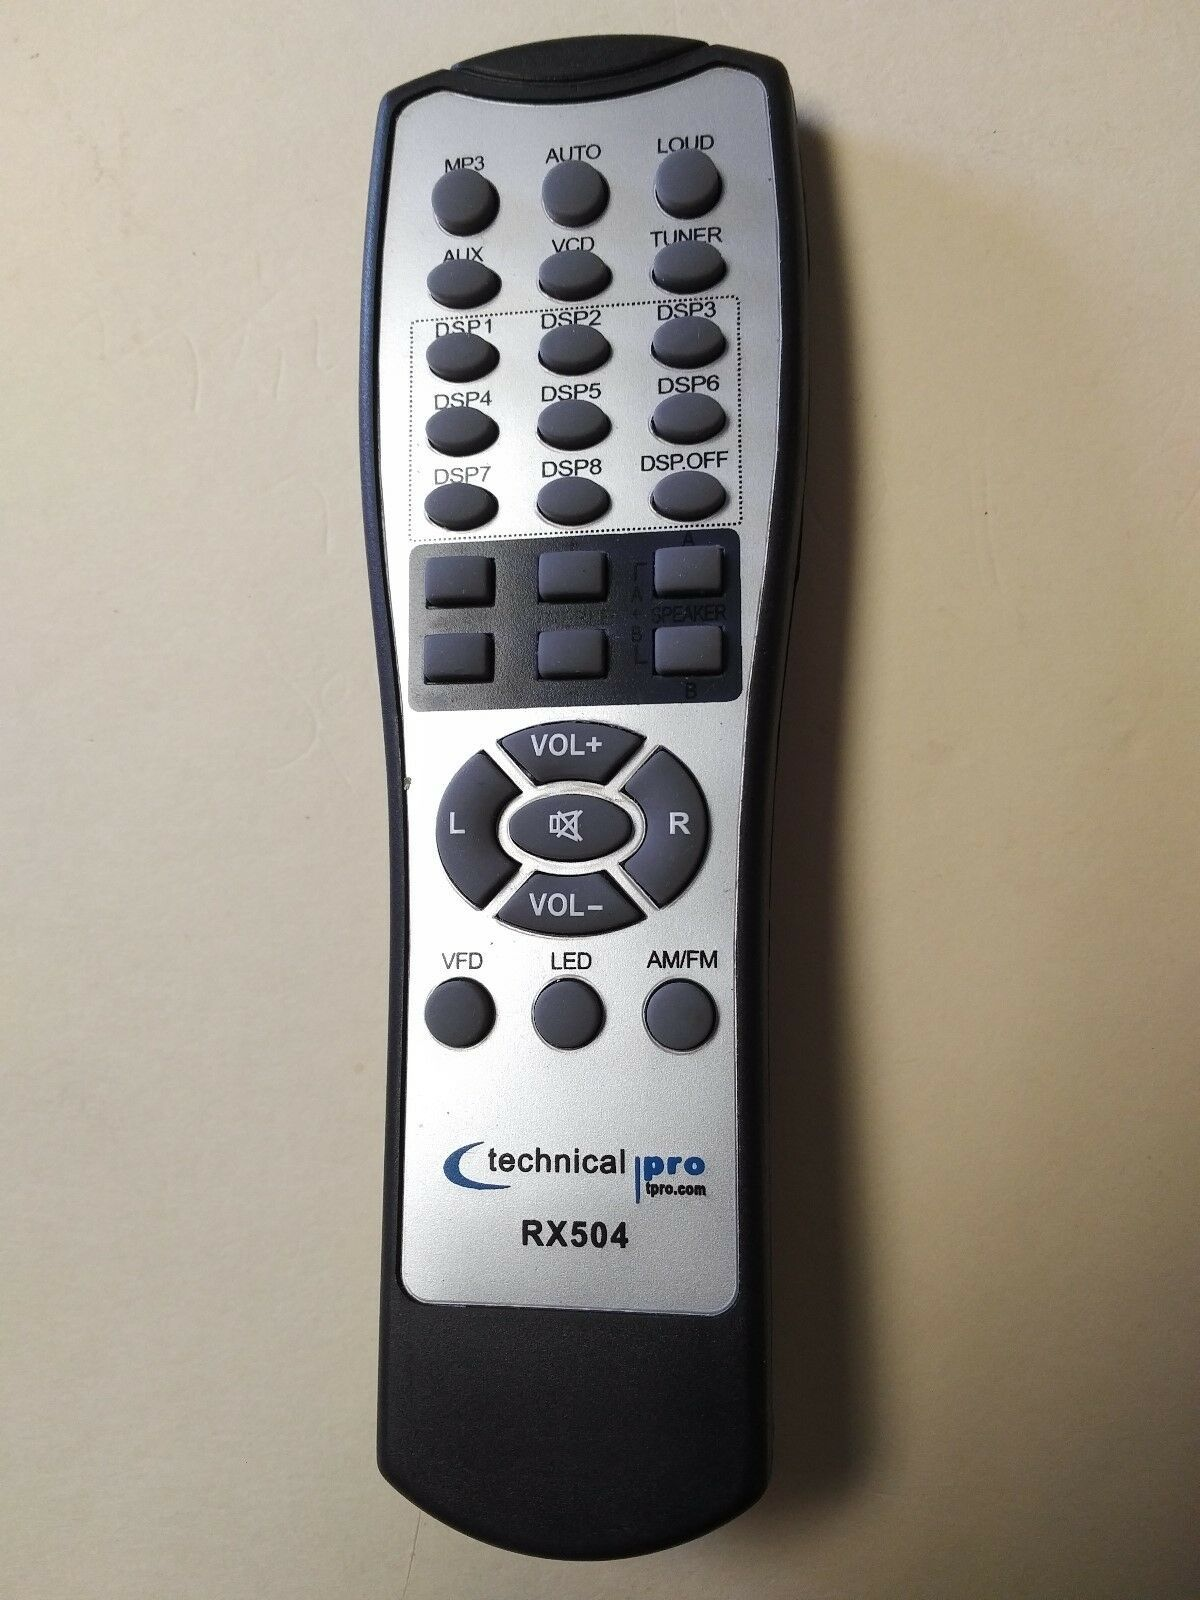 Original Technical Pro REMOTE CONTROL for RX503 RX504 RX505BT and others